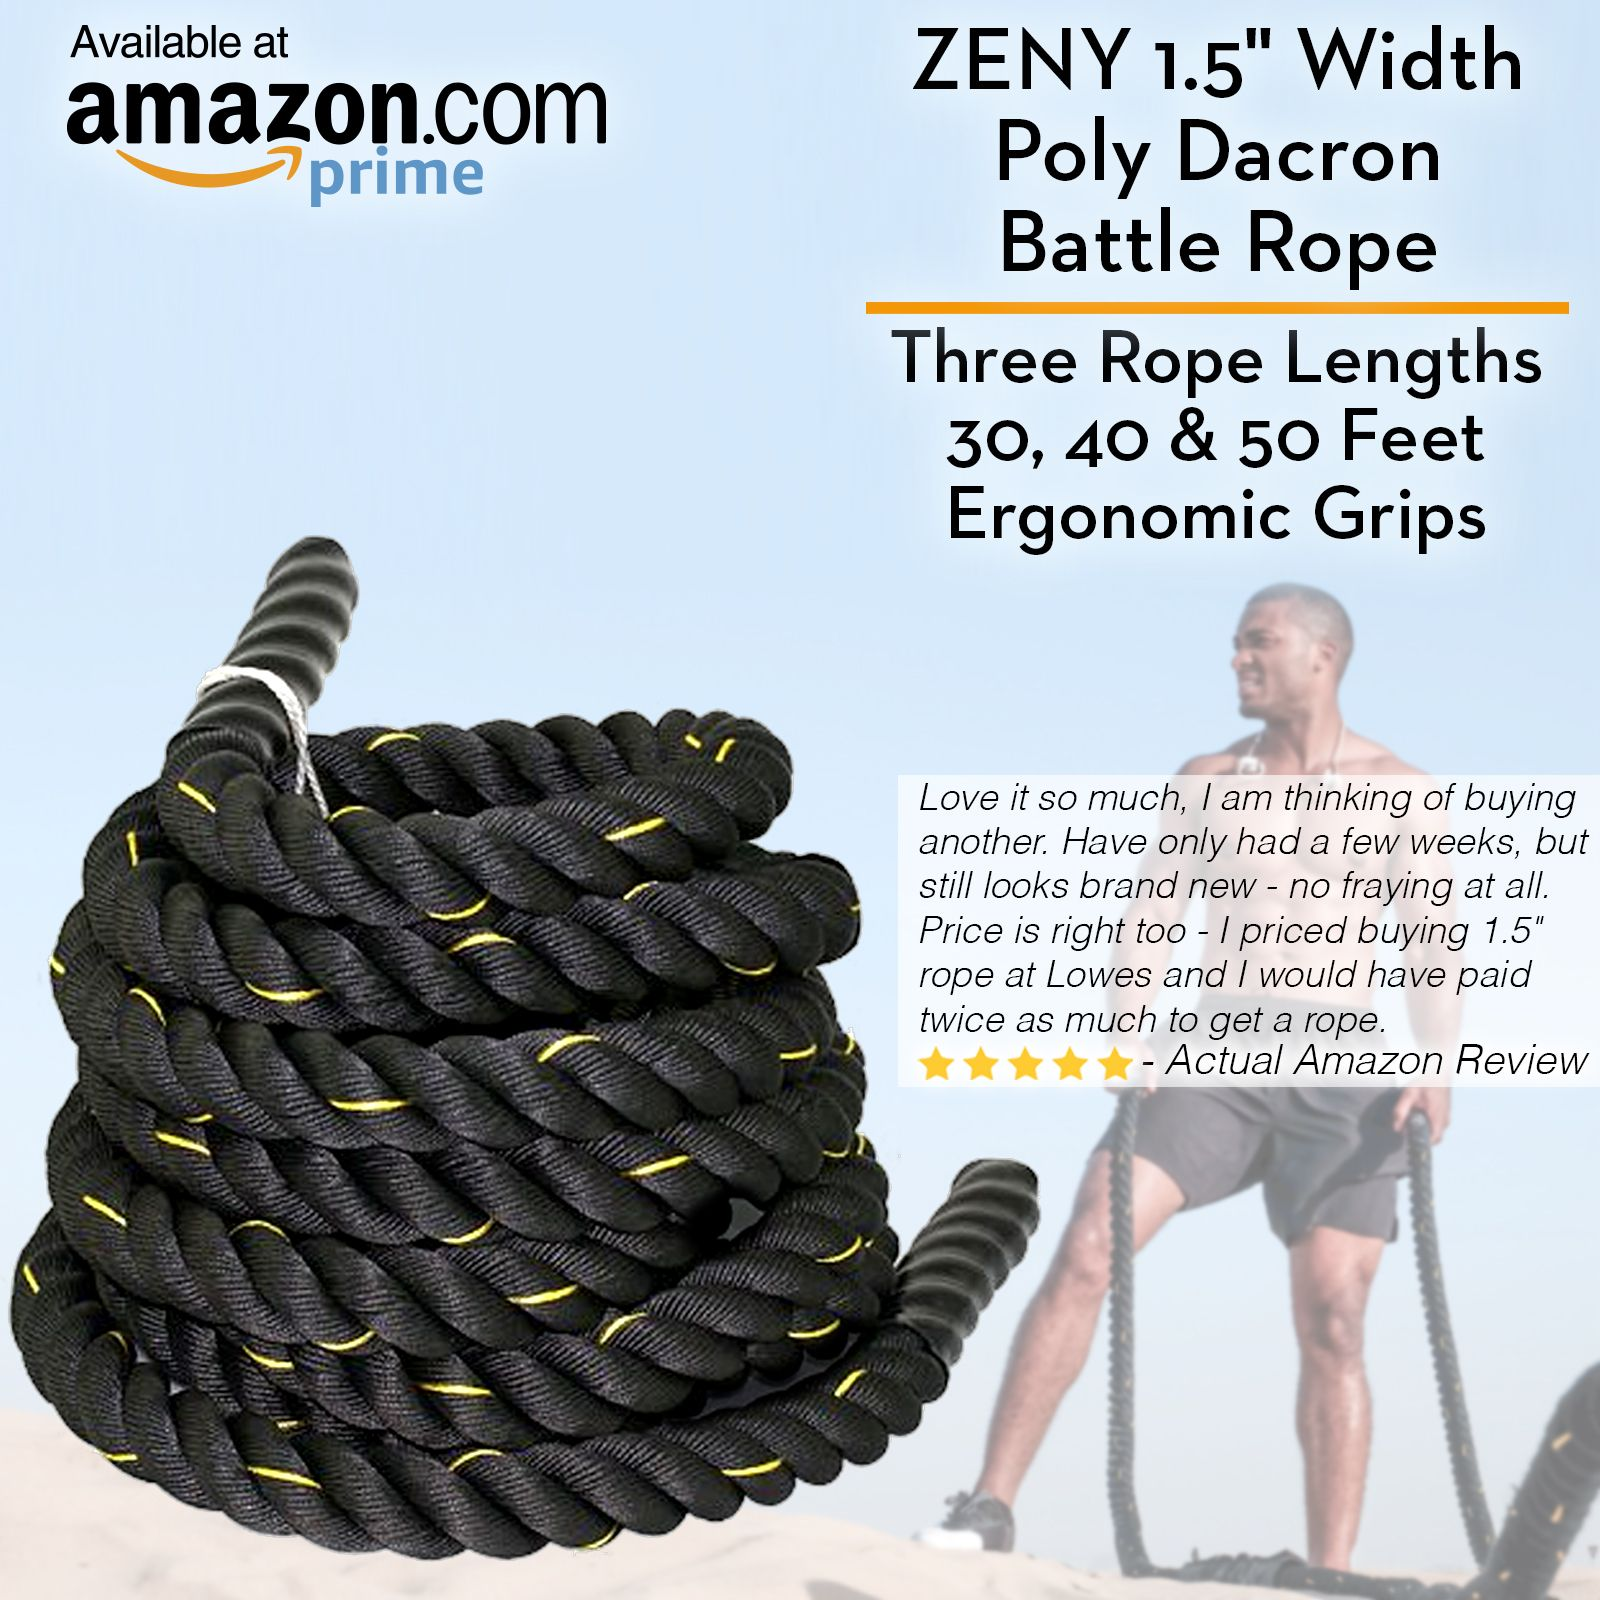 Achieve Intense Versatile Workouts With Ease With The Zenyproducts Poly Dacron Battle Ropes You Can Pack On Lean Core Strength Training Battle Ropes Dacron